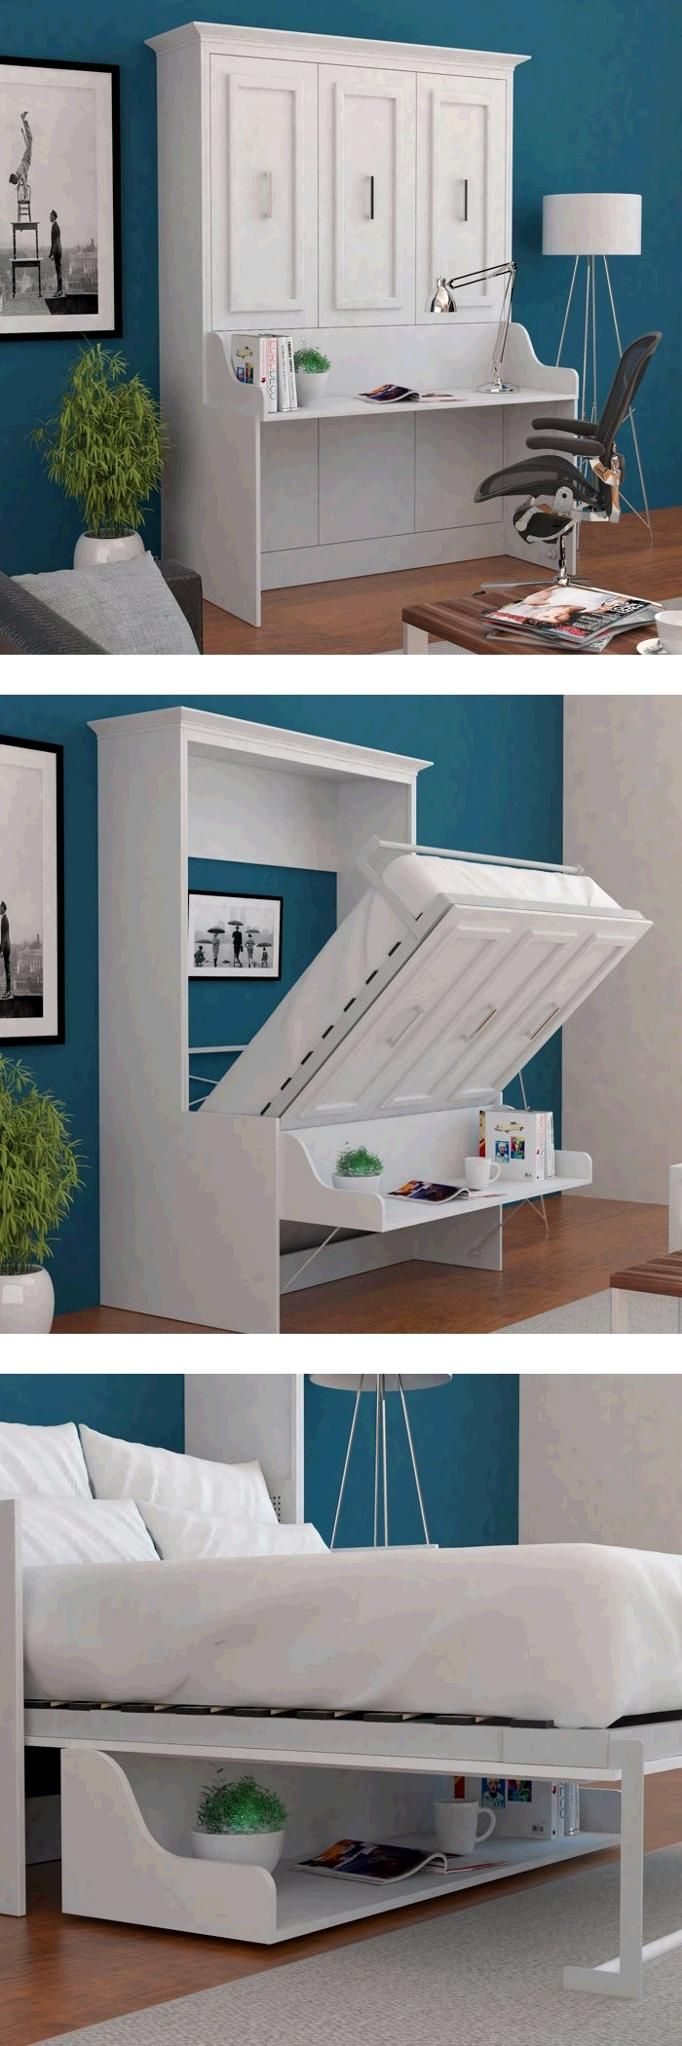 murphy bed home office combination. Murphy Bed Home Office Combination I